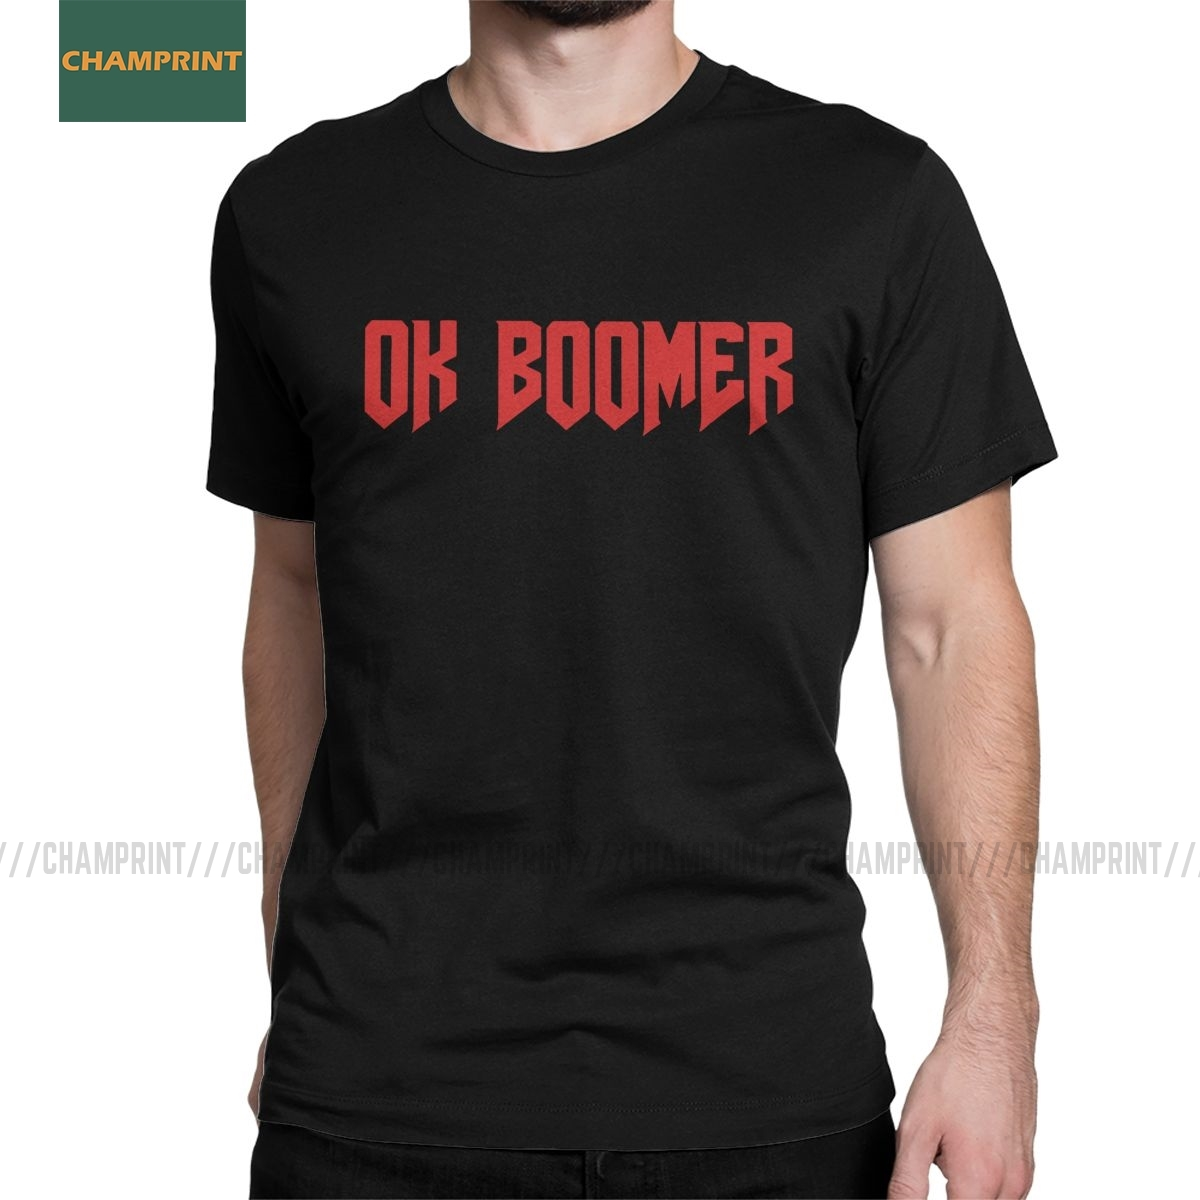 OK Boomer DOOM T Shirts Men 100% Cotton Unique T-Shirts Round Collar Quote Generation Z Okay Meme Tees Short Sleeve New Arrival image